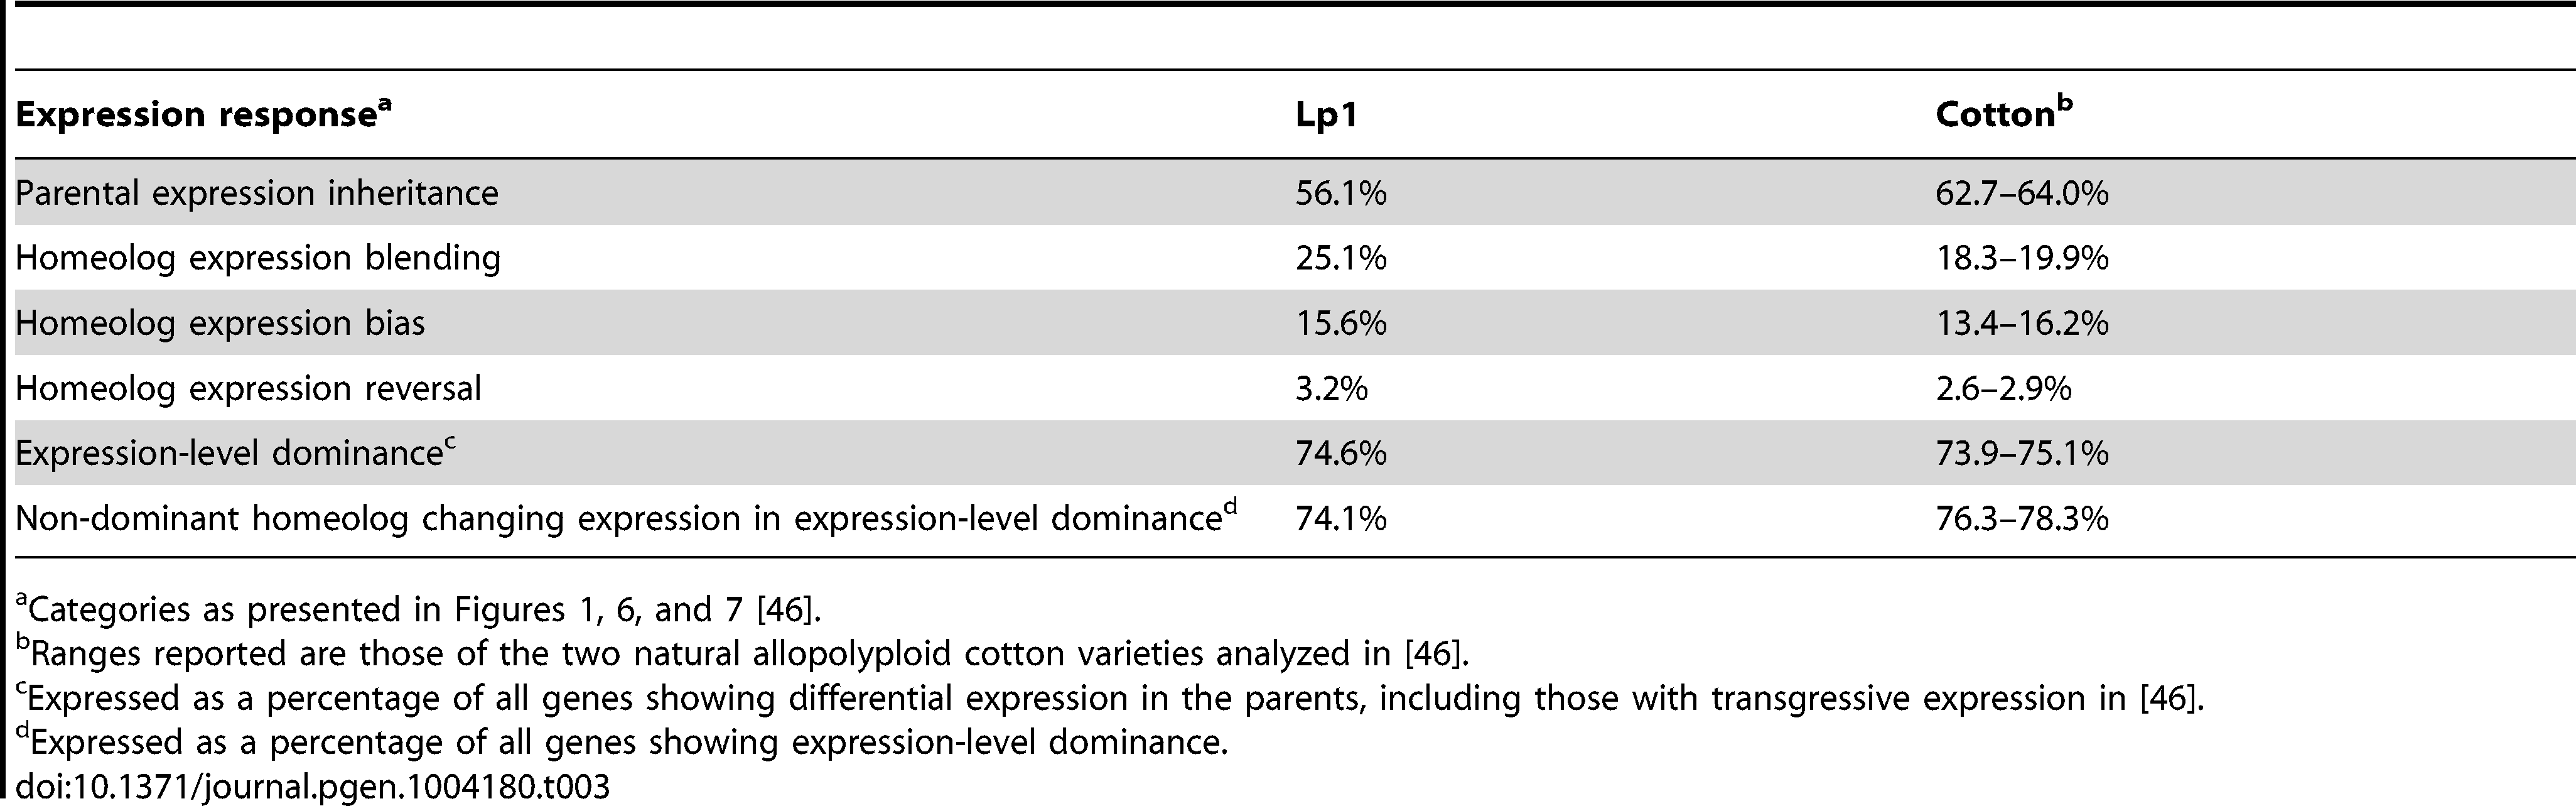 Similarities in the transcriptional response to allopolyploidy in Lp1 and natural cotton allopolyploids.